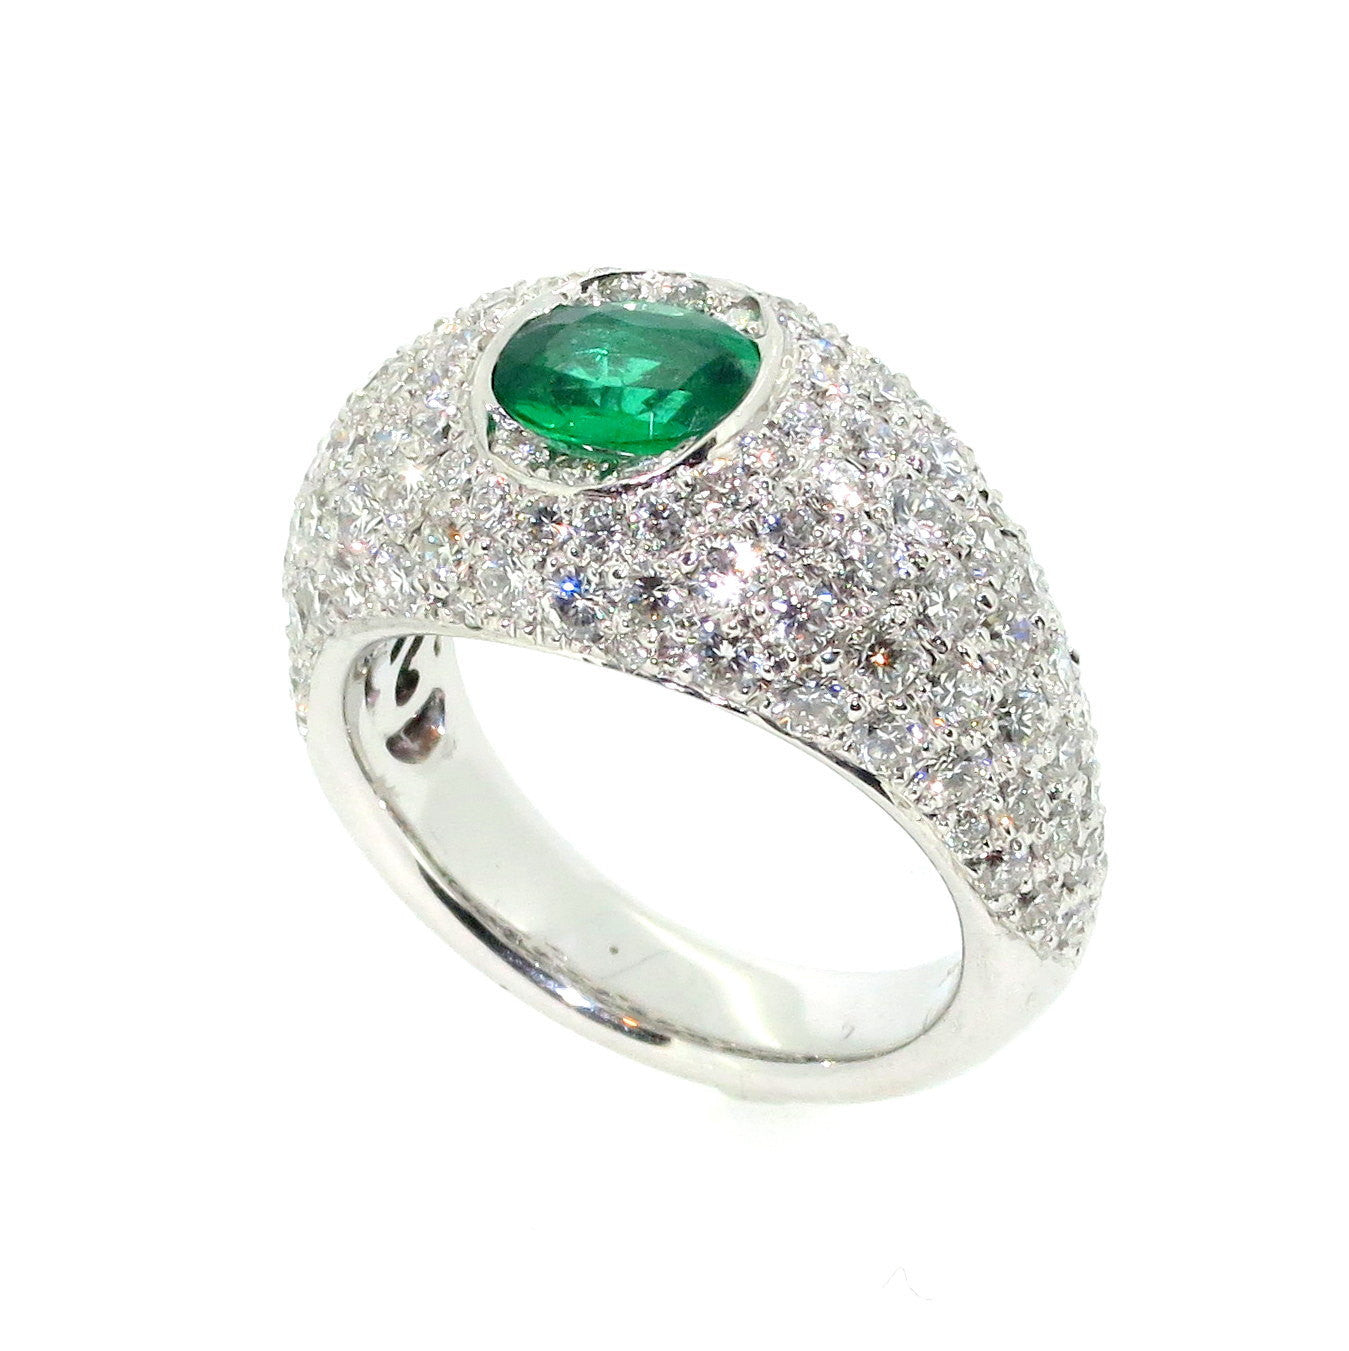 Colombian Emerald Engagement Ring, Bombé Ring, Anniversary Ring, Alternative Gemstone Engagement Ring Cocktail Ring